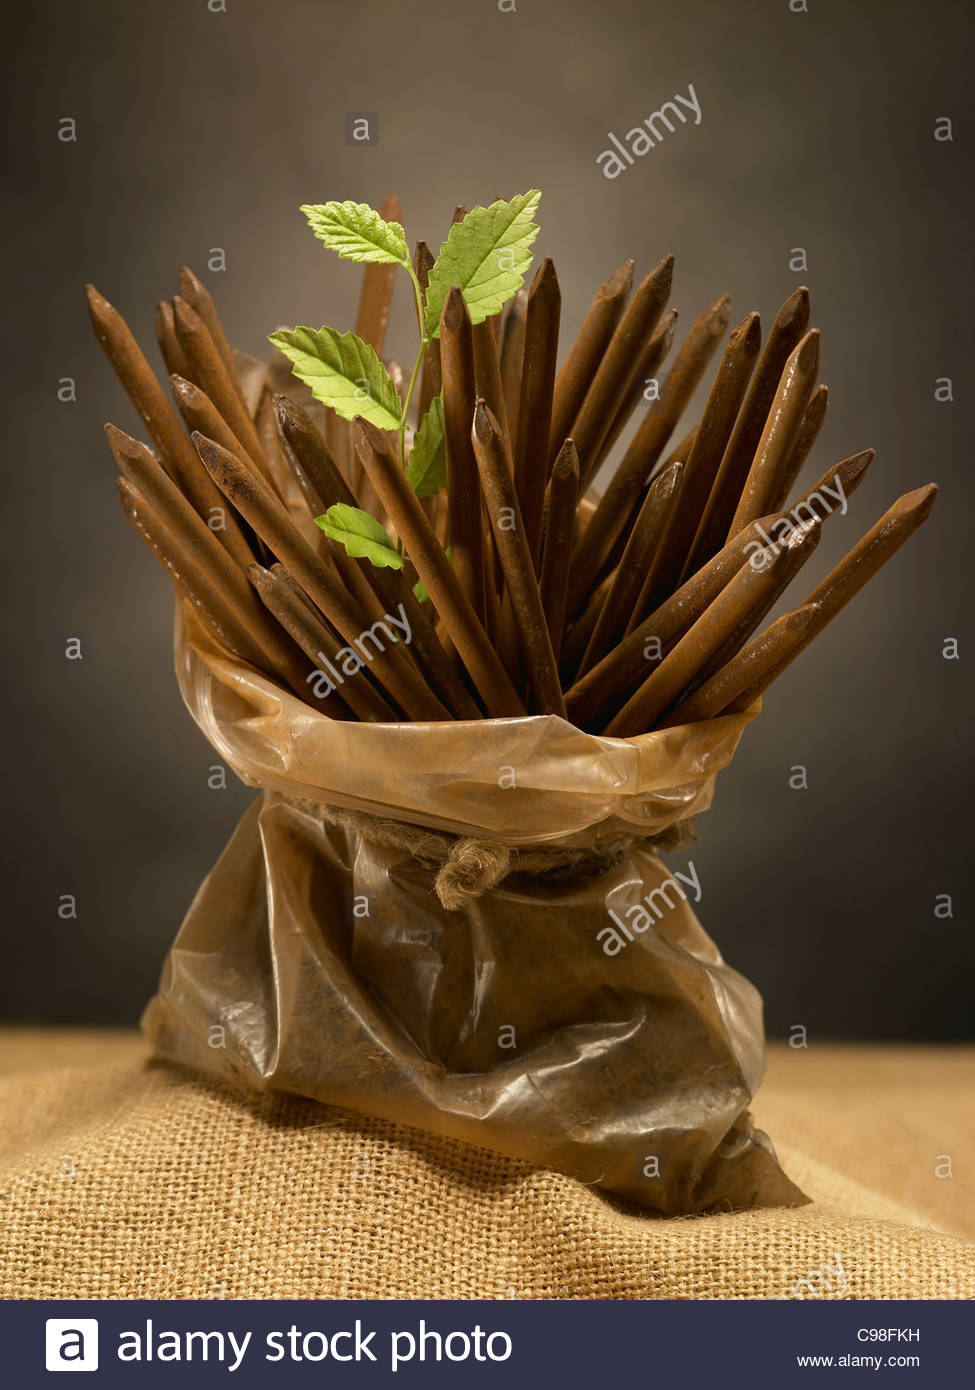 Rusty iron nails and plant - Stock Image